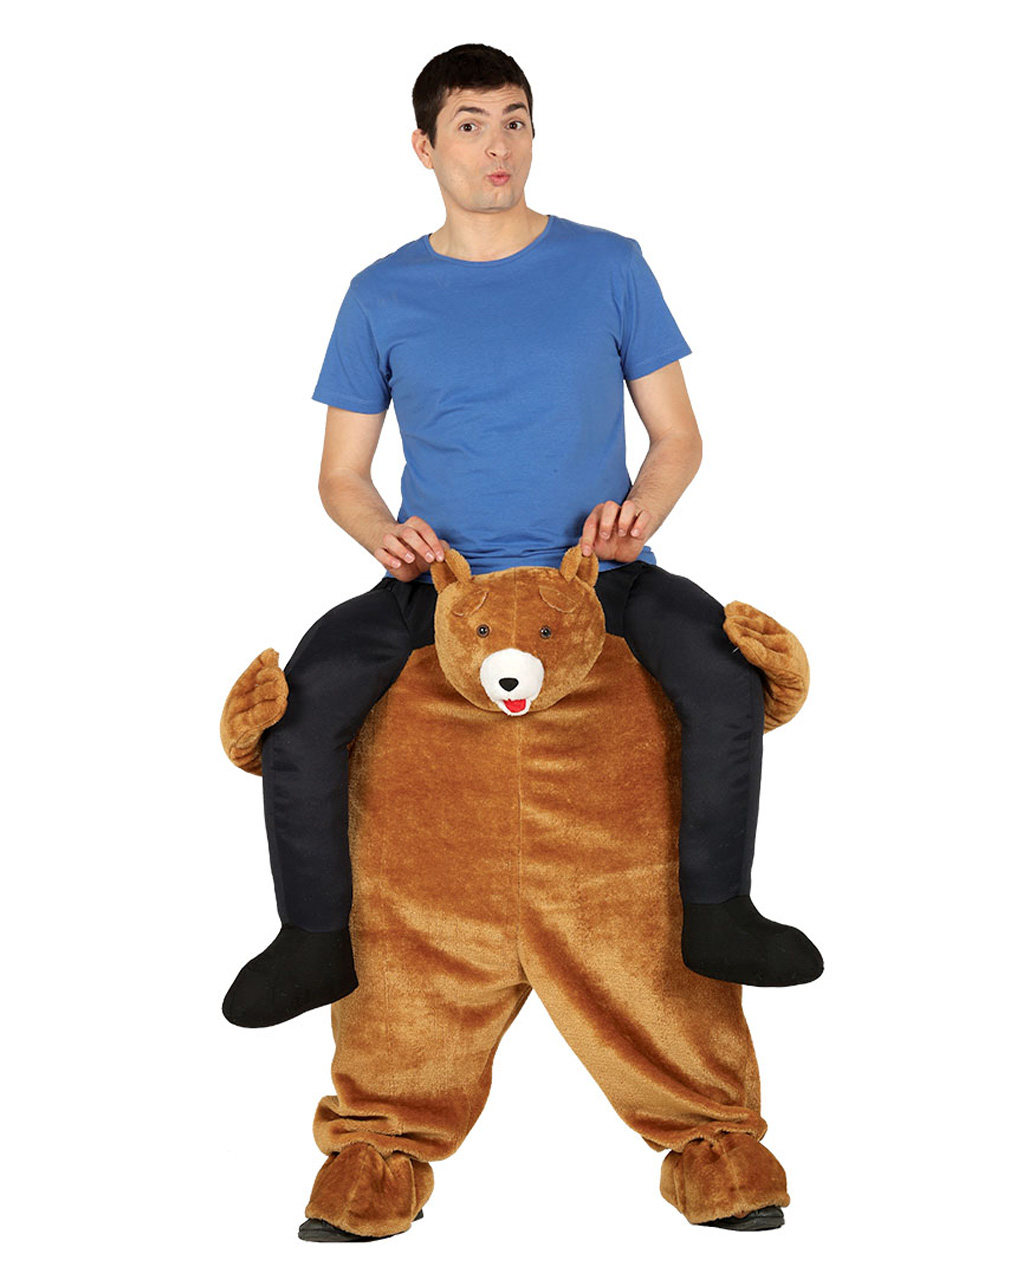 Hard core bear costume for adults